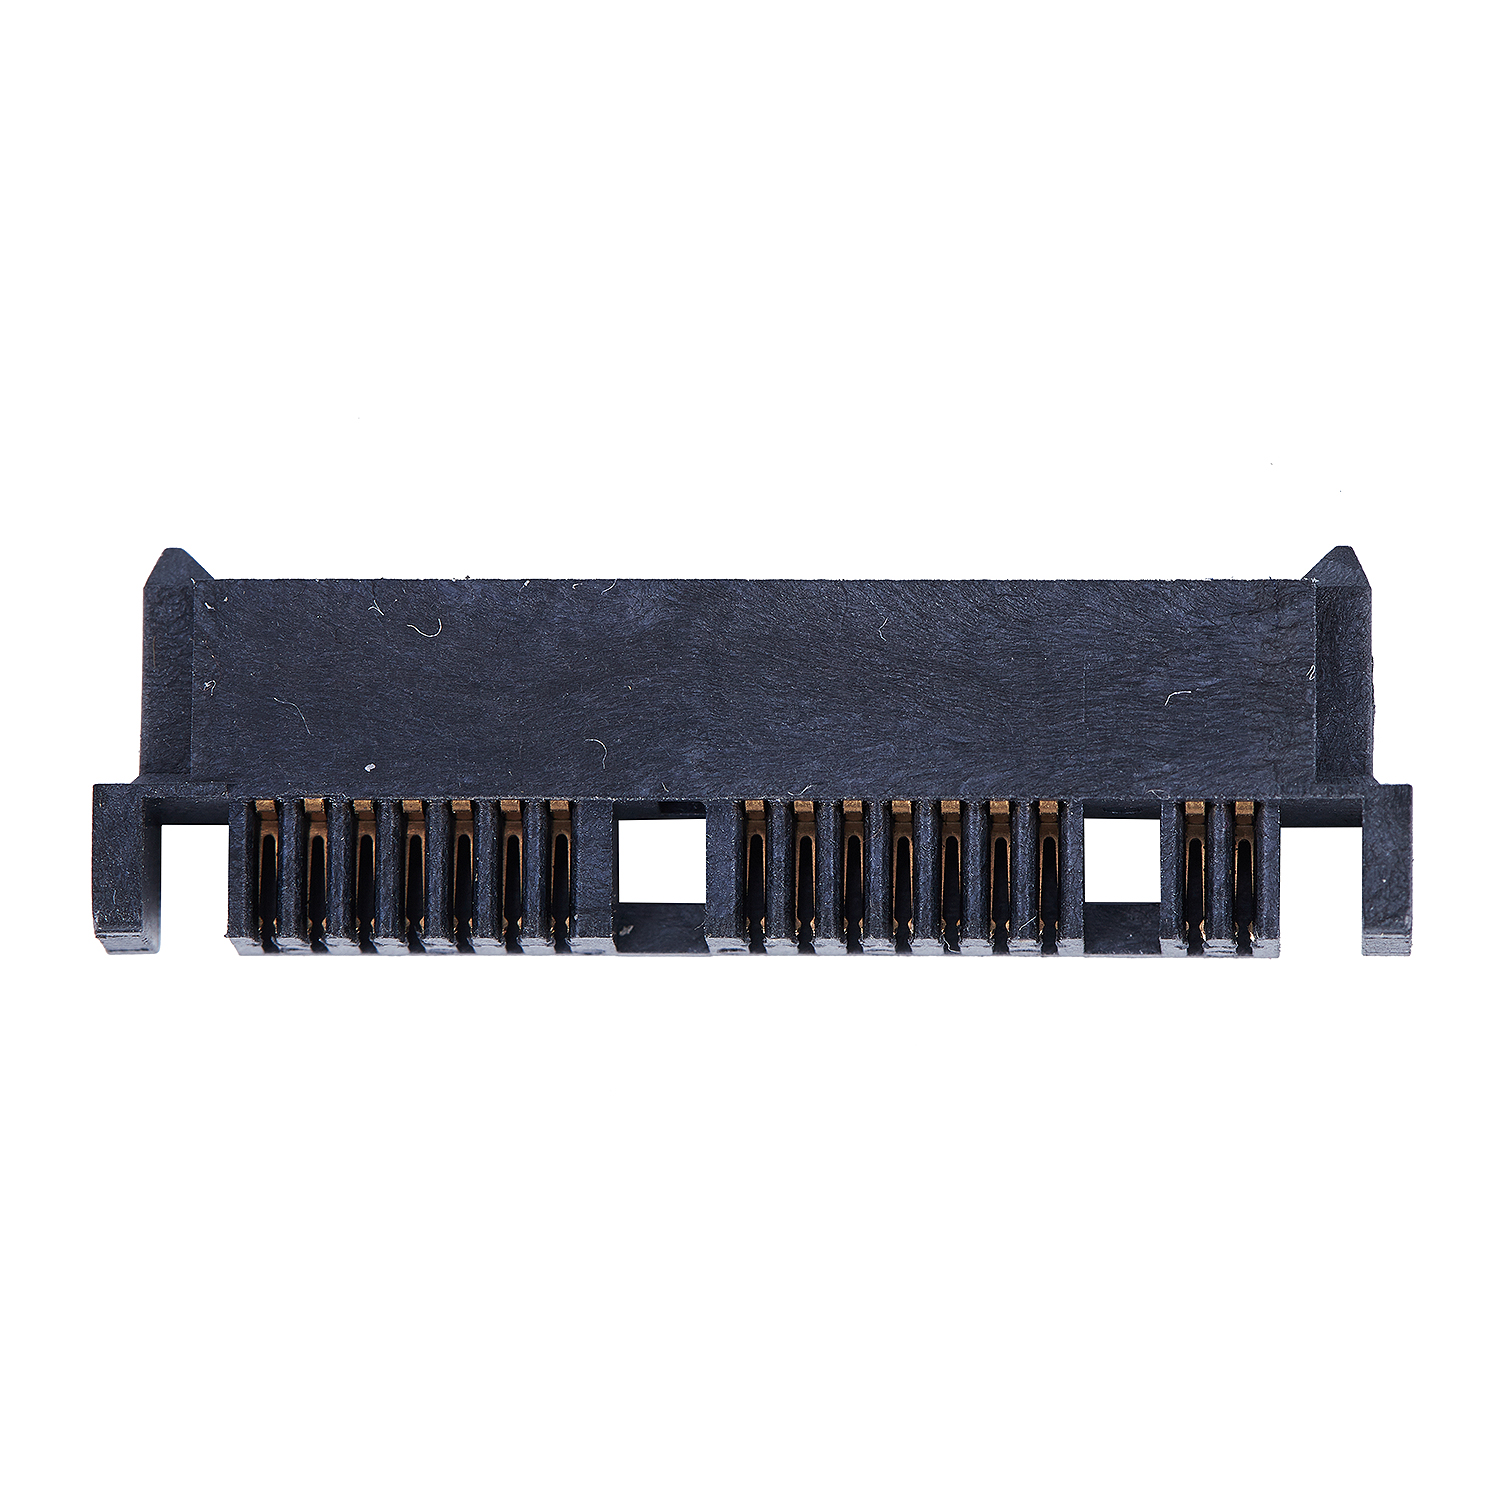 For HP 2740P Hard Disk Drive Interposer Adapter Connector SATA